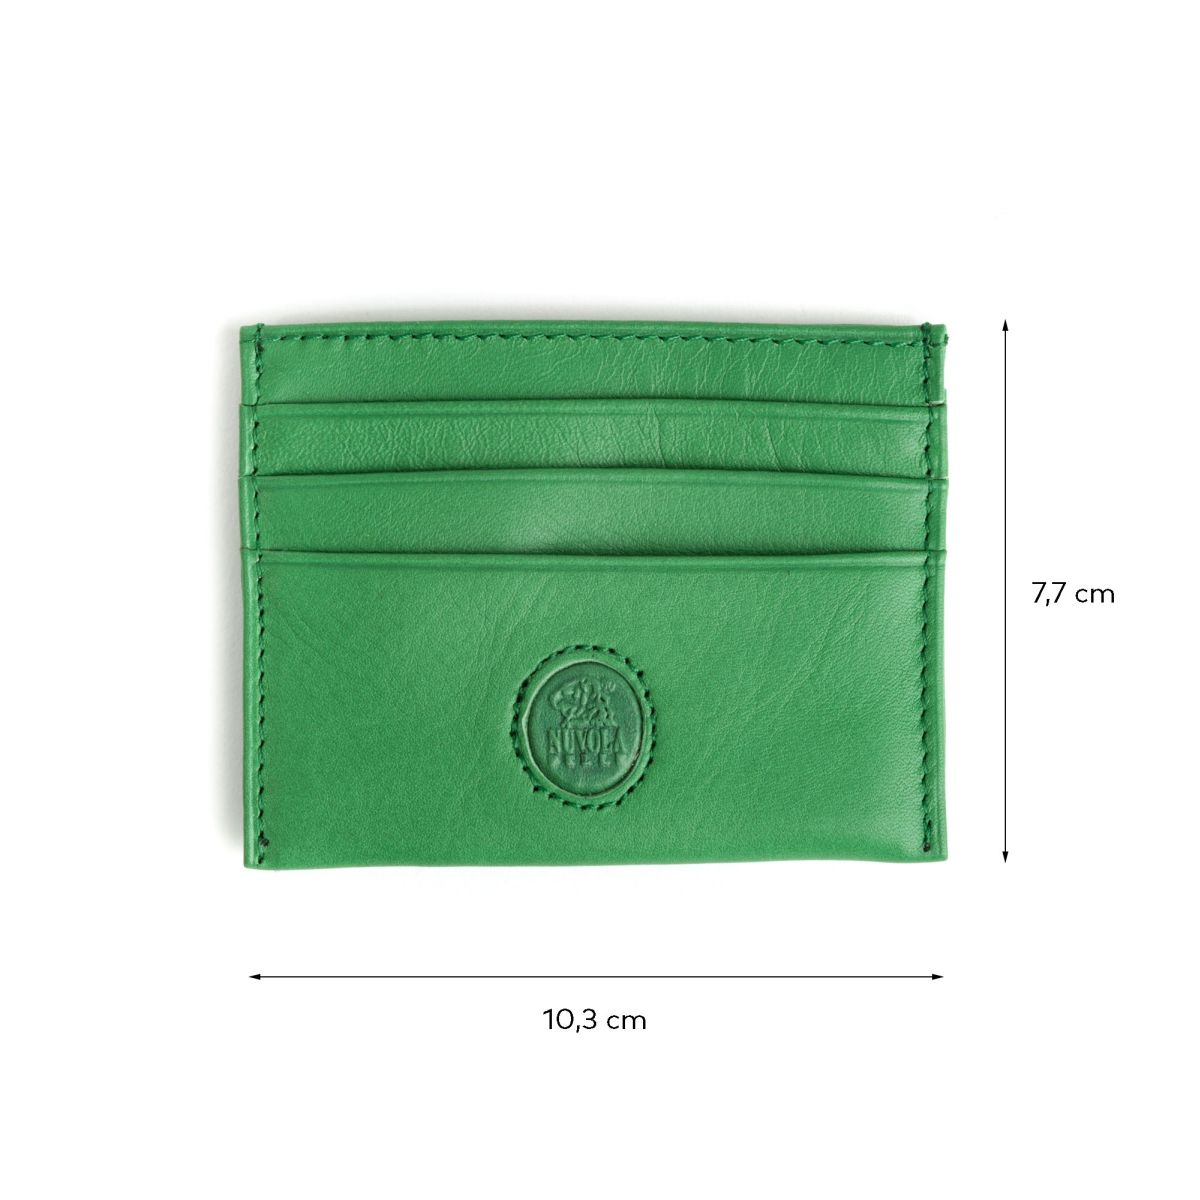 NUVOLA PELLE Minimalist leather credit card wallet - Green